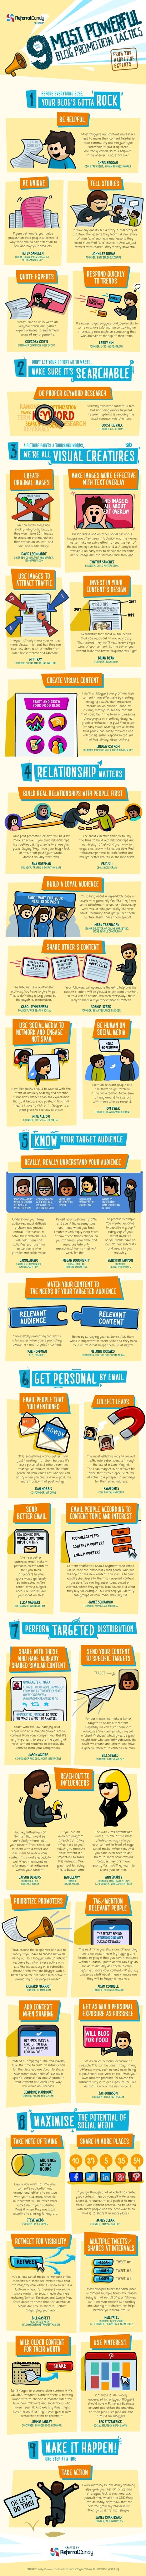 How to Promote Your Stories Effectively #Infographic | The Social Web | Scoop.it